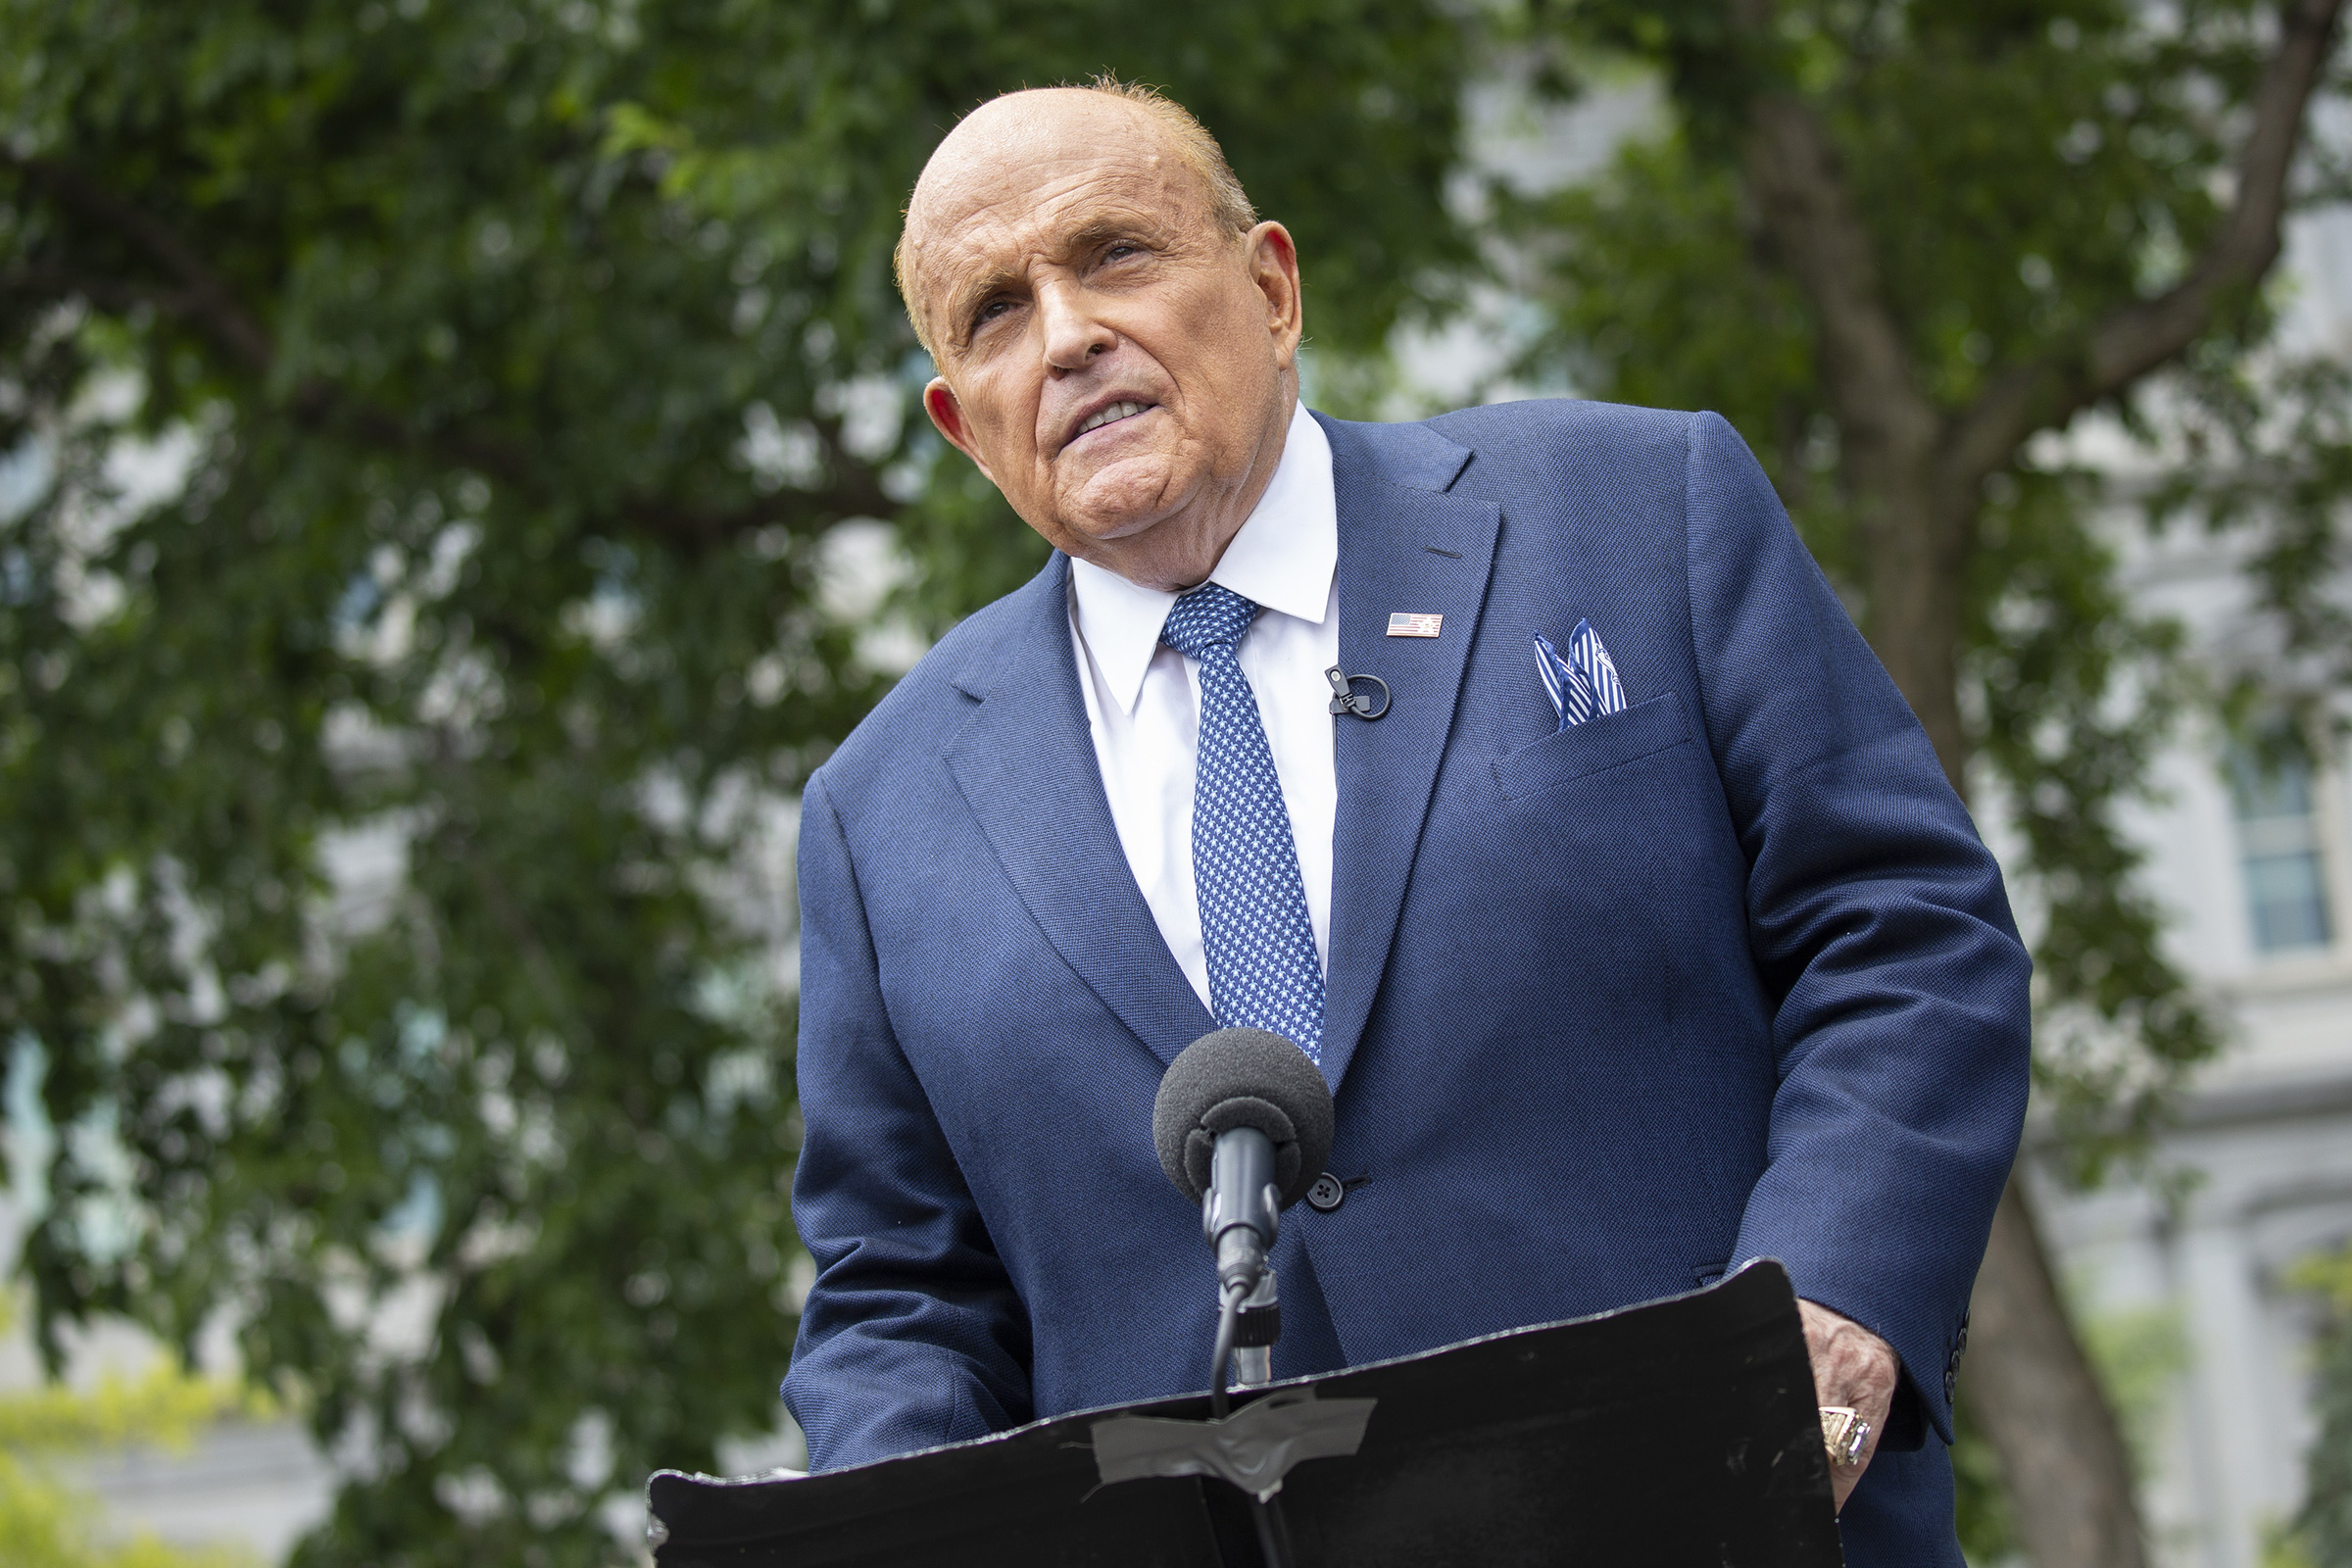 President Donald Trump's lawyer and former New York City Mayor Rudy Giuliani pauses while speaking to members of the media outside the White House in Washington, D.C., on July 1, 2020.